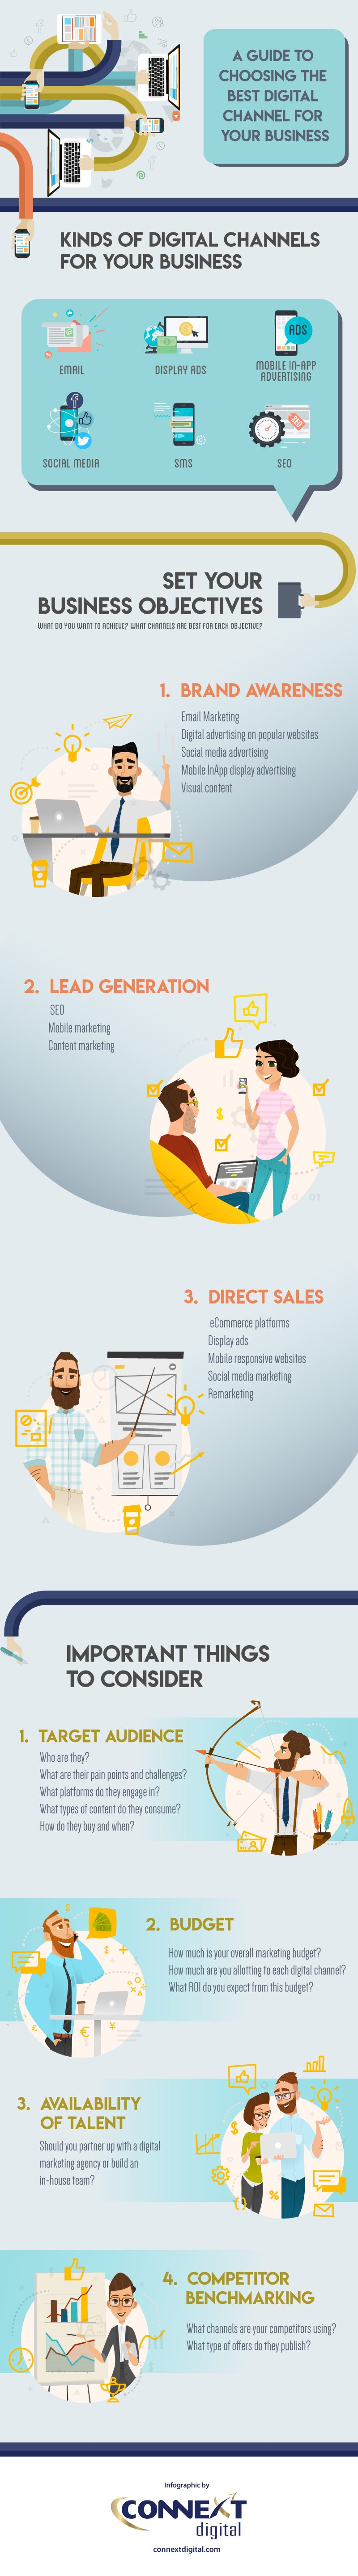 Best Digital Marketing Channel for Your Business